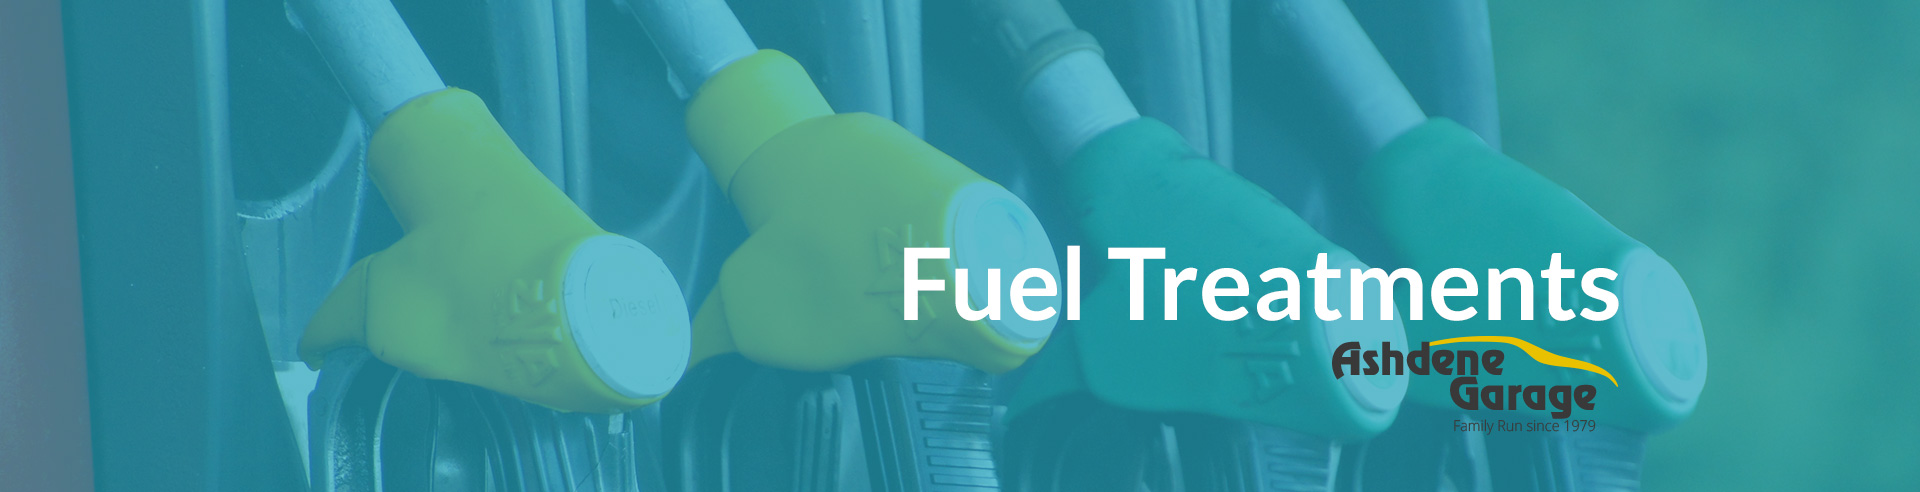 Fuel Treatment Options at Ashdene Garage